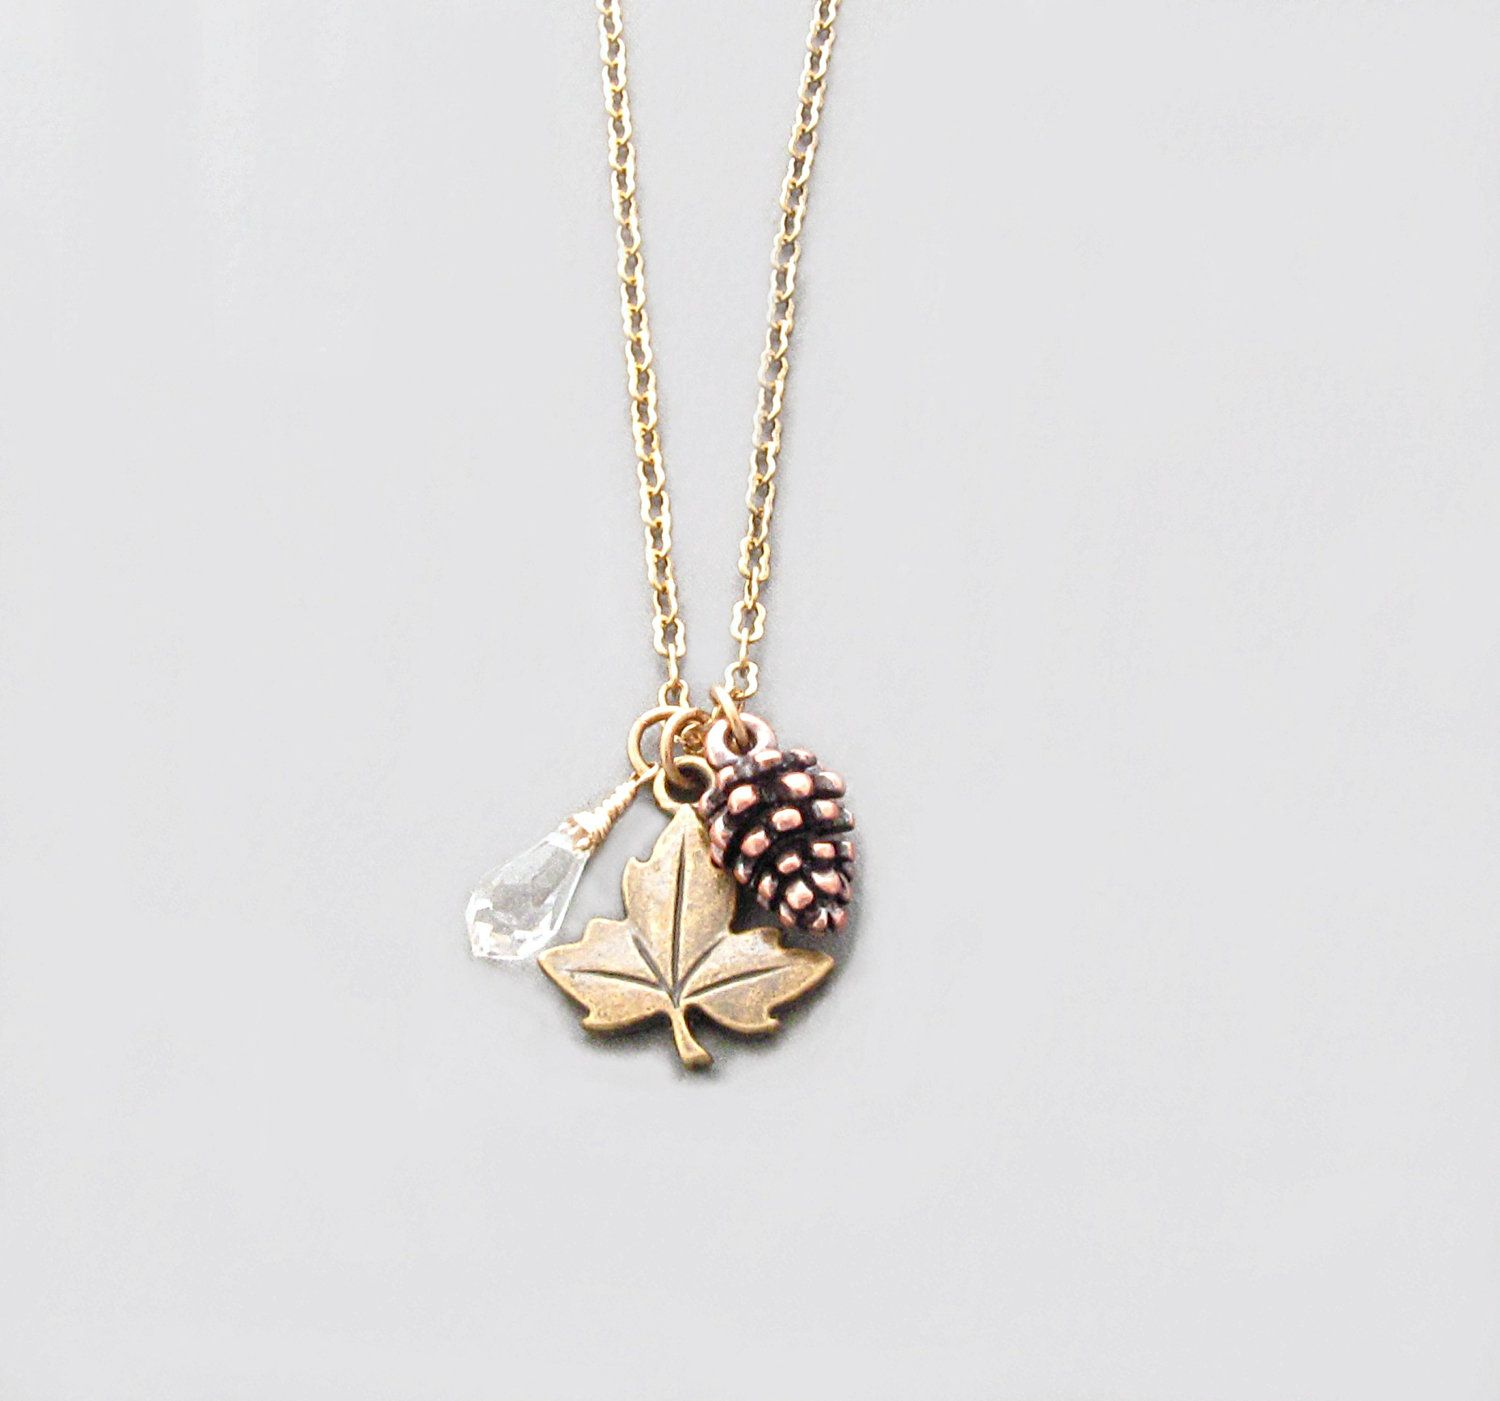 Autumn Jewelry, Pinecone Necklace, Leaf Necklace,